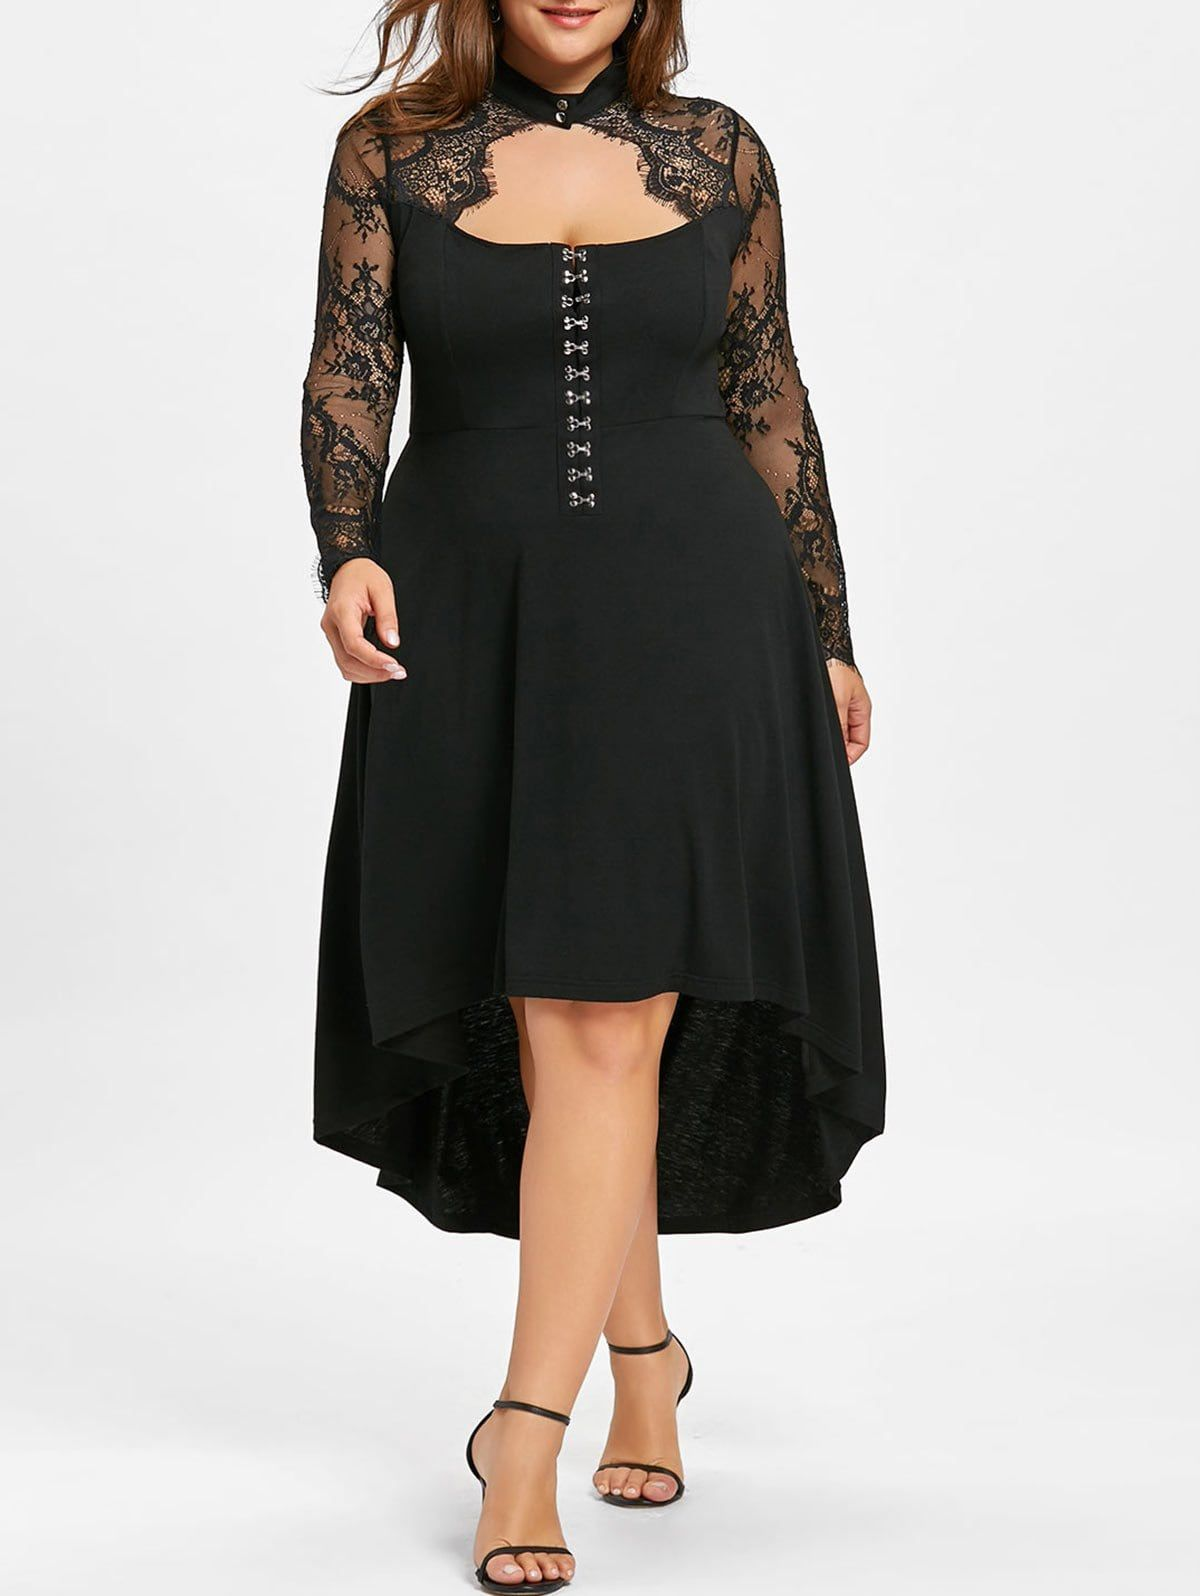 1aa003acba Competitive Black 4xl Dresses online, mobile Gamiss offers you Plus Size  Lace Up Dip Hem Keyhole Dress at $19.92, we also offer Wholesale service.